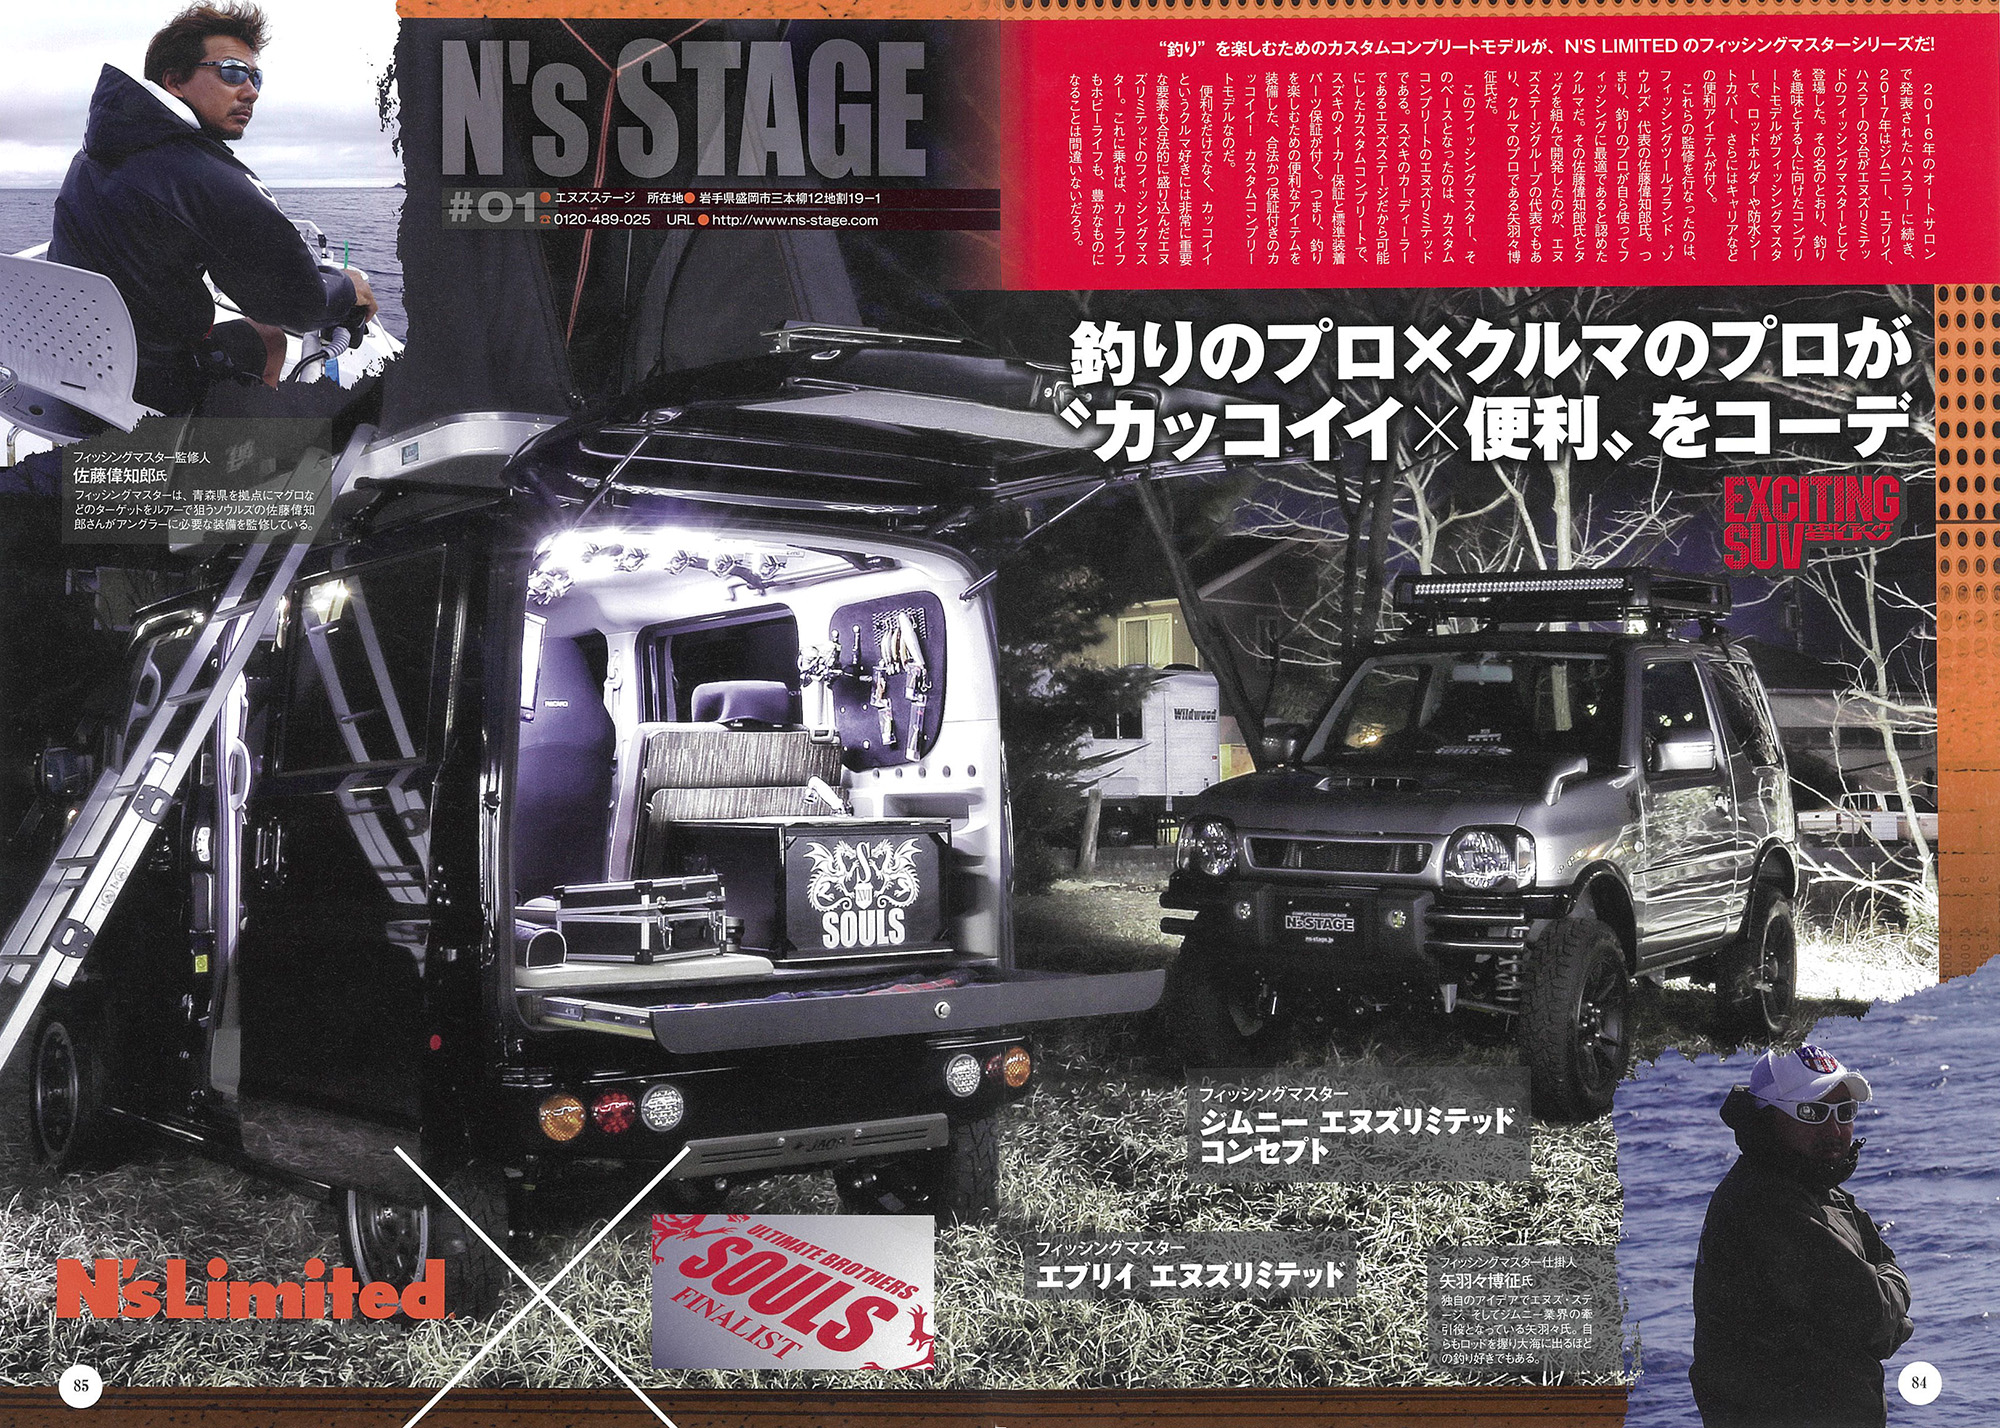 http://www.ns-stage.com/publication/6.jpg